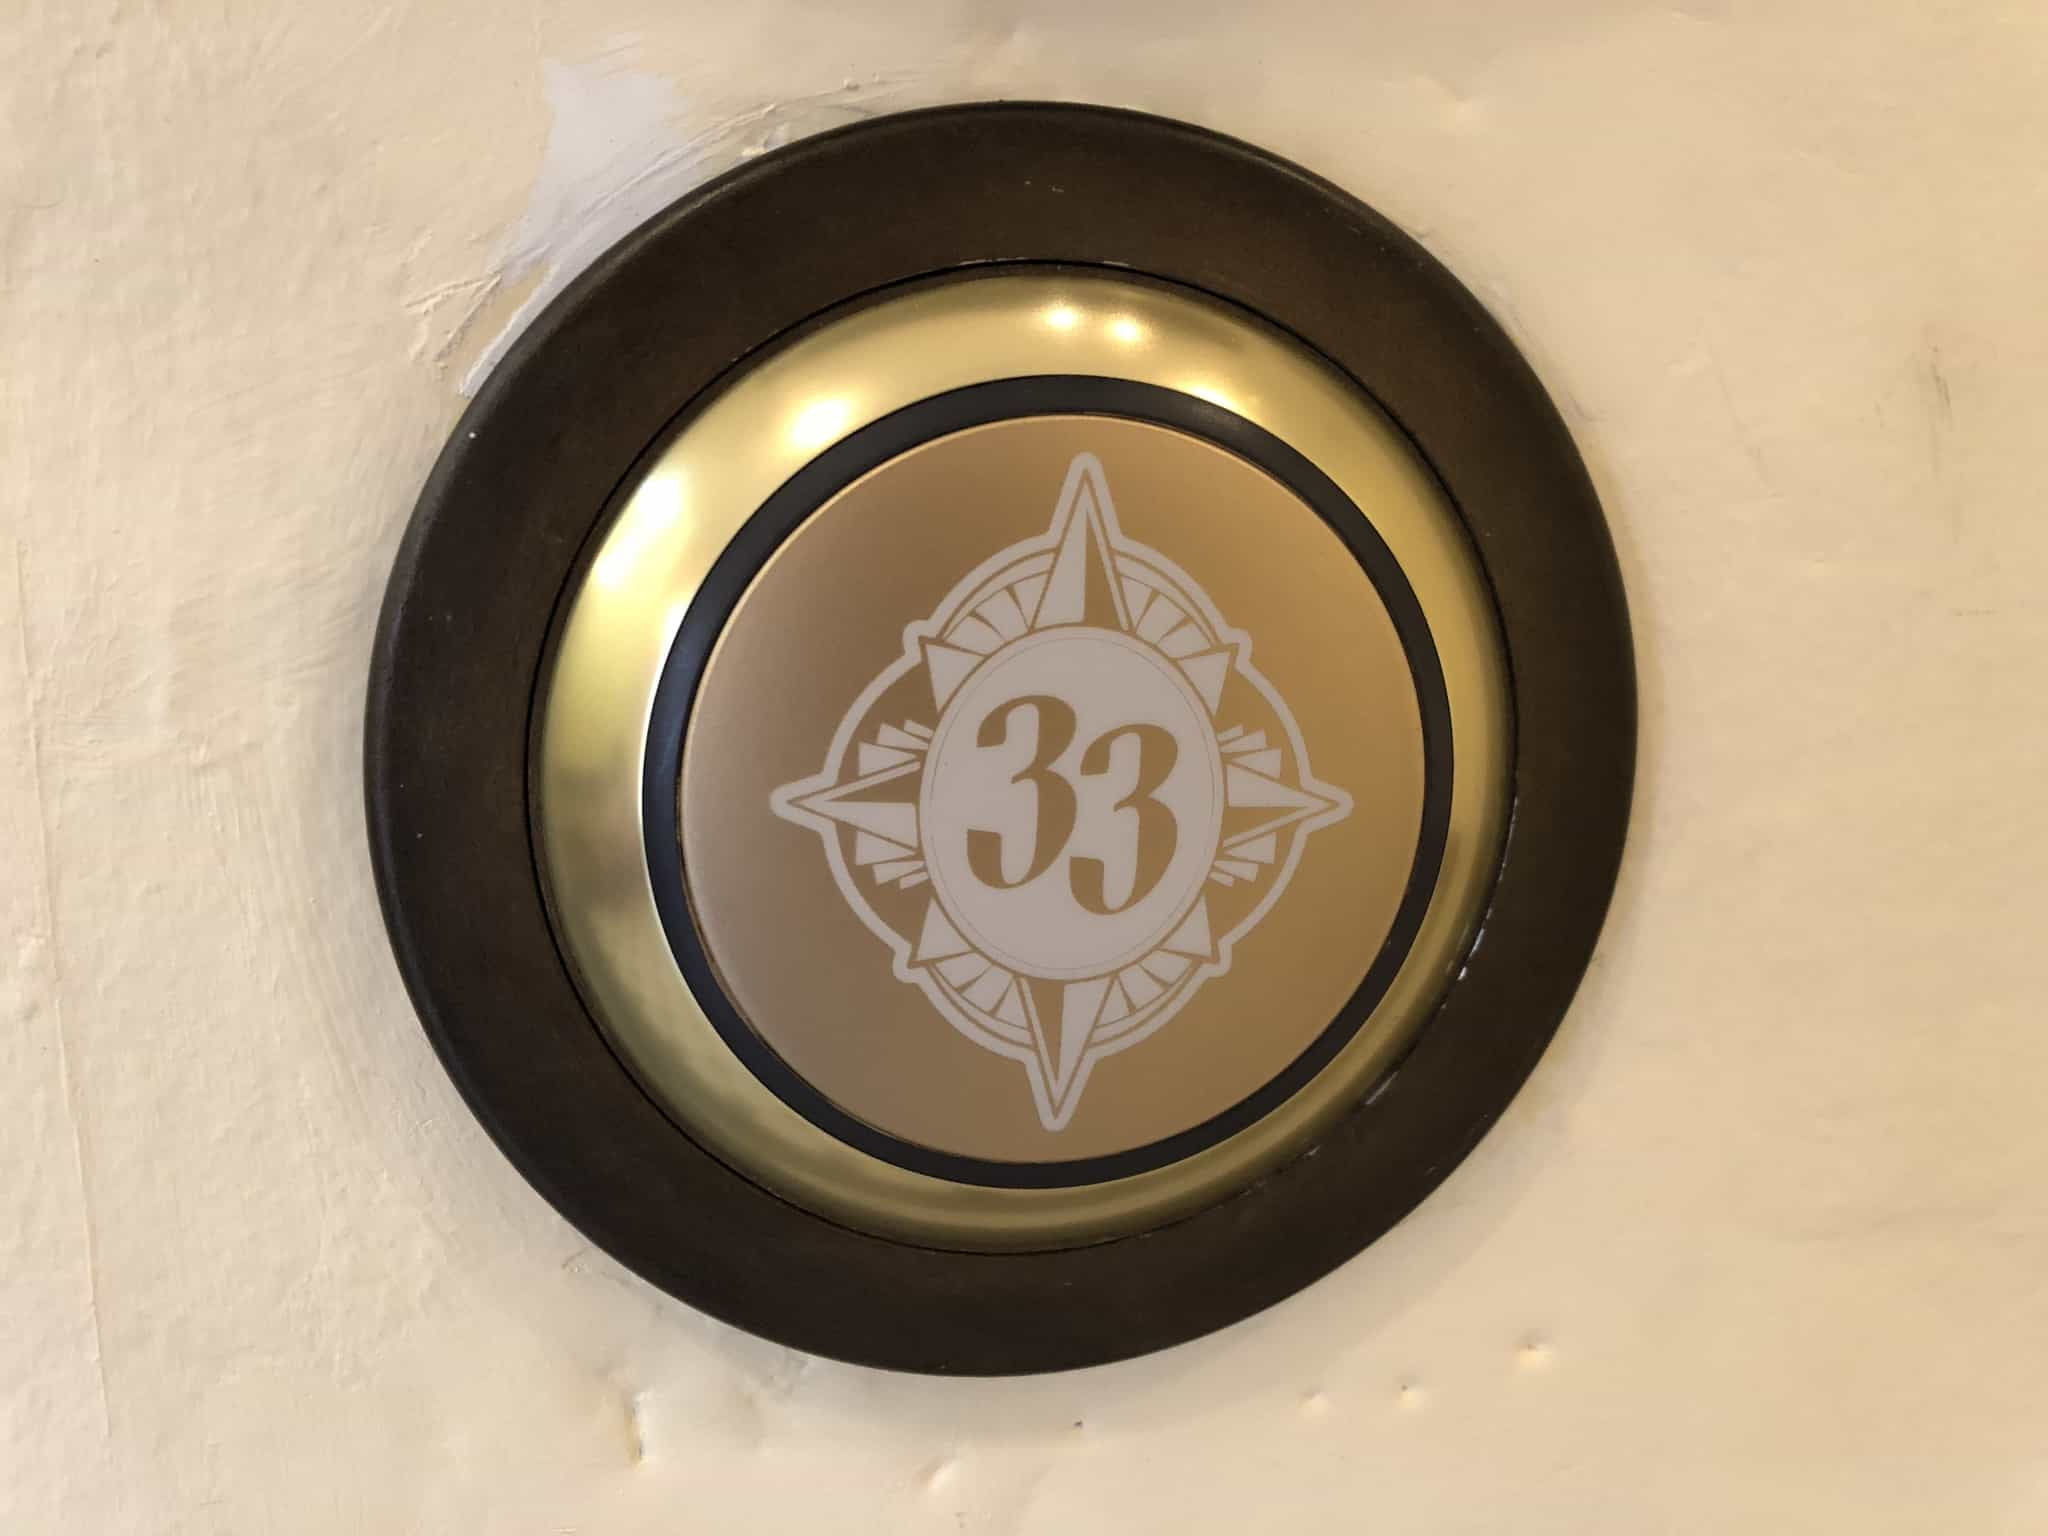 PHOTOS: Club 33 Logo Installed at Catwalk Bar at Disney\'s.